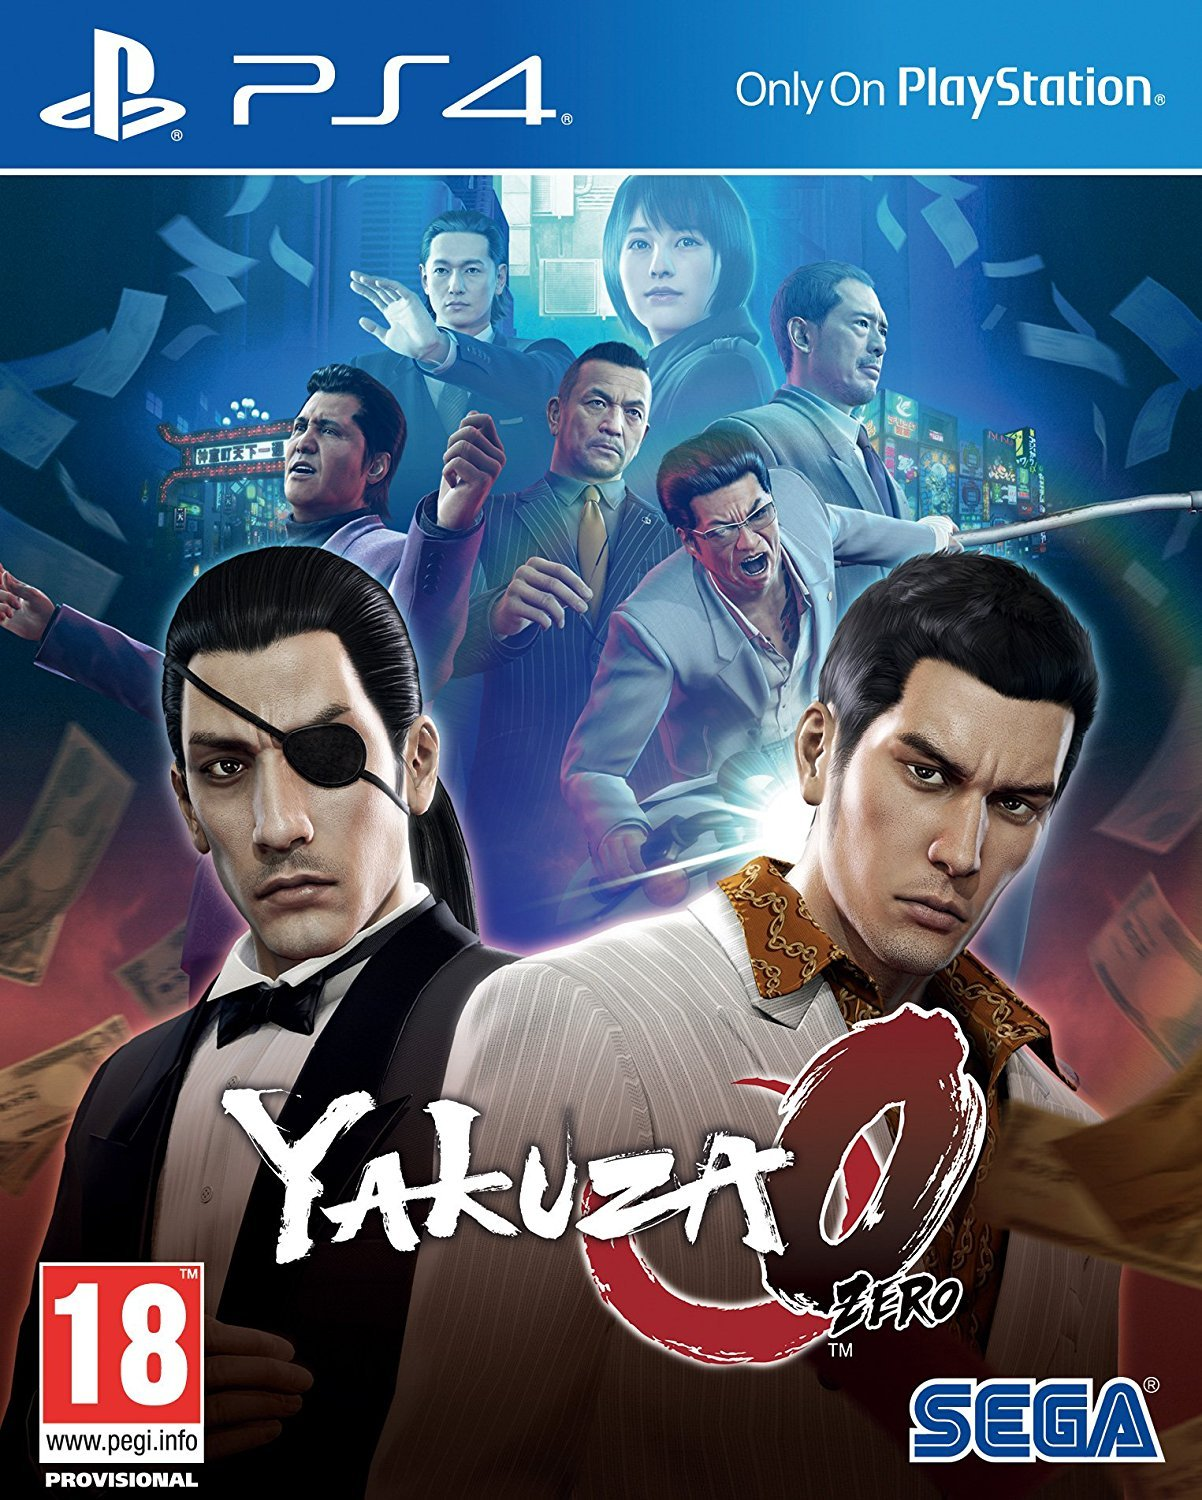 Buy Yakuza 0 Ps4 Online At Low Prices In India Sega Video Persona 5 Steelbook Edition Reg1 English Games